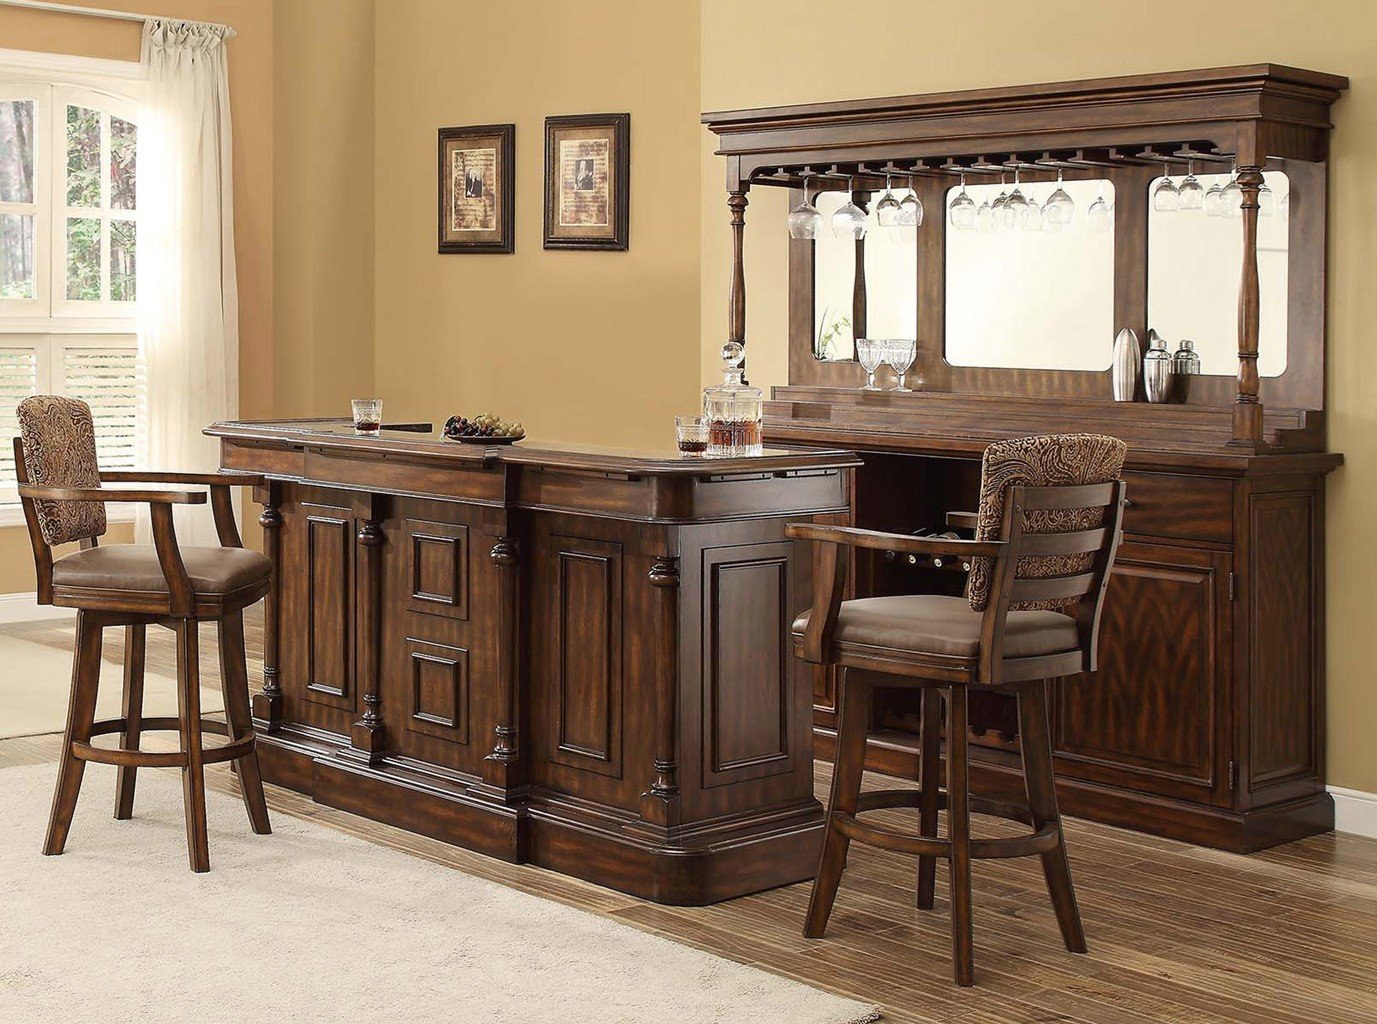 Trafalgar Square Deluxe Home Bar Set Home Bar And Game